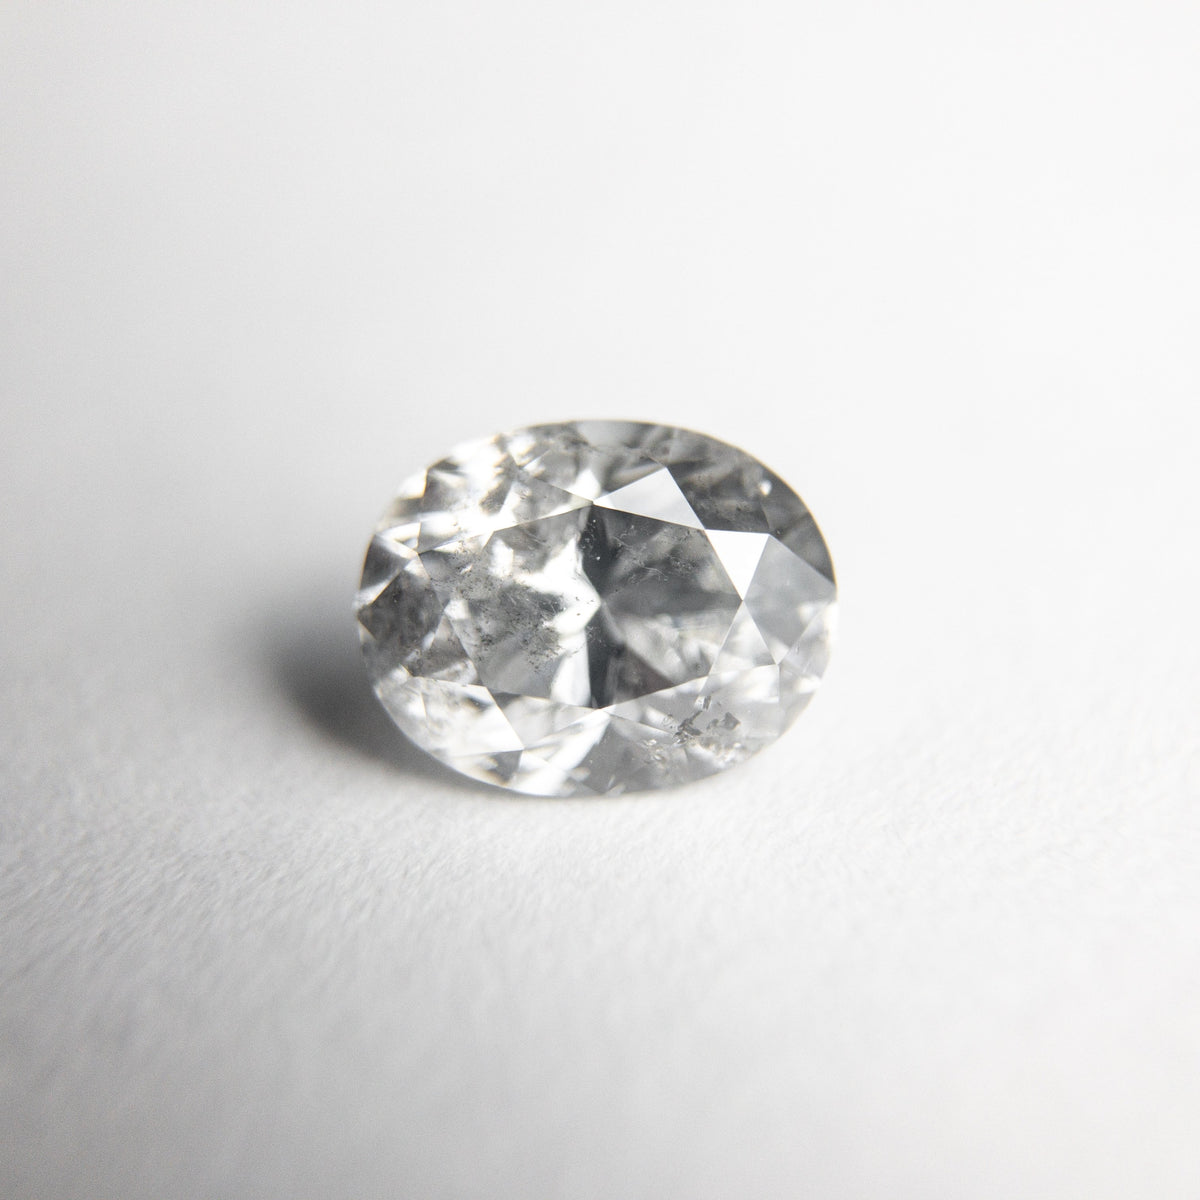 0.84ct 6.55x5.16x3.87mm Oval Brilliant 18399-01